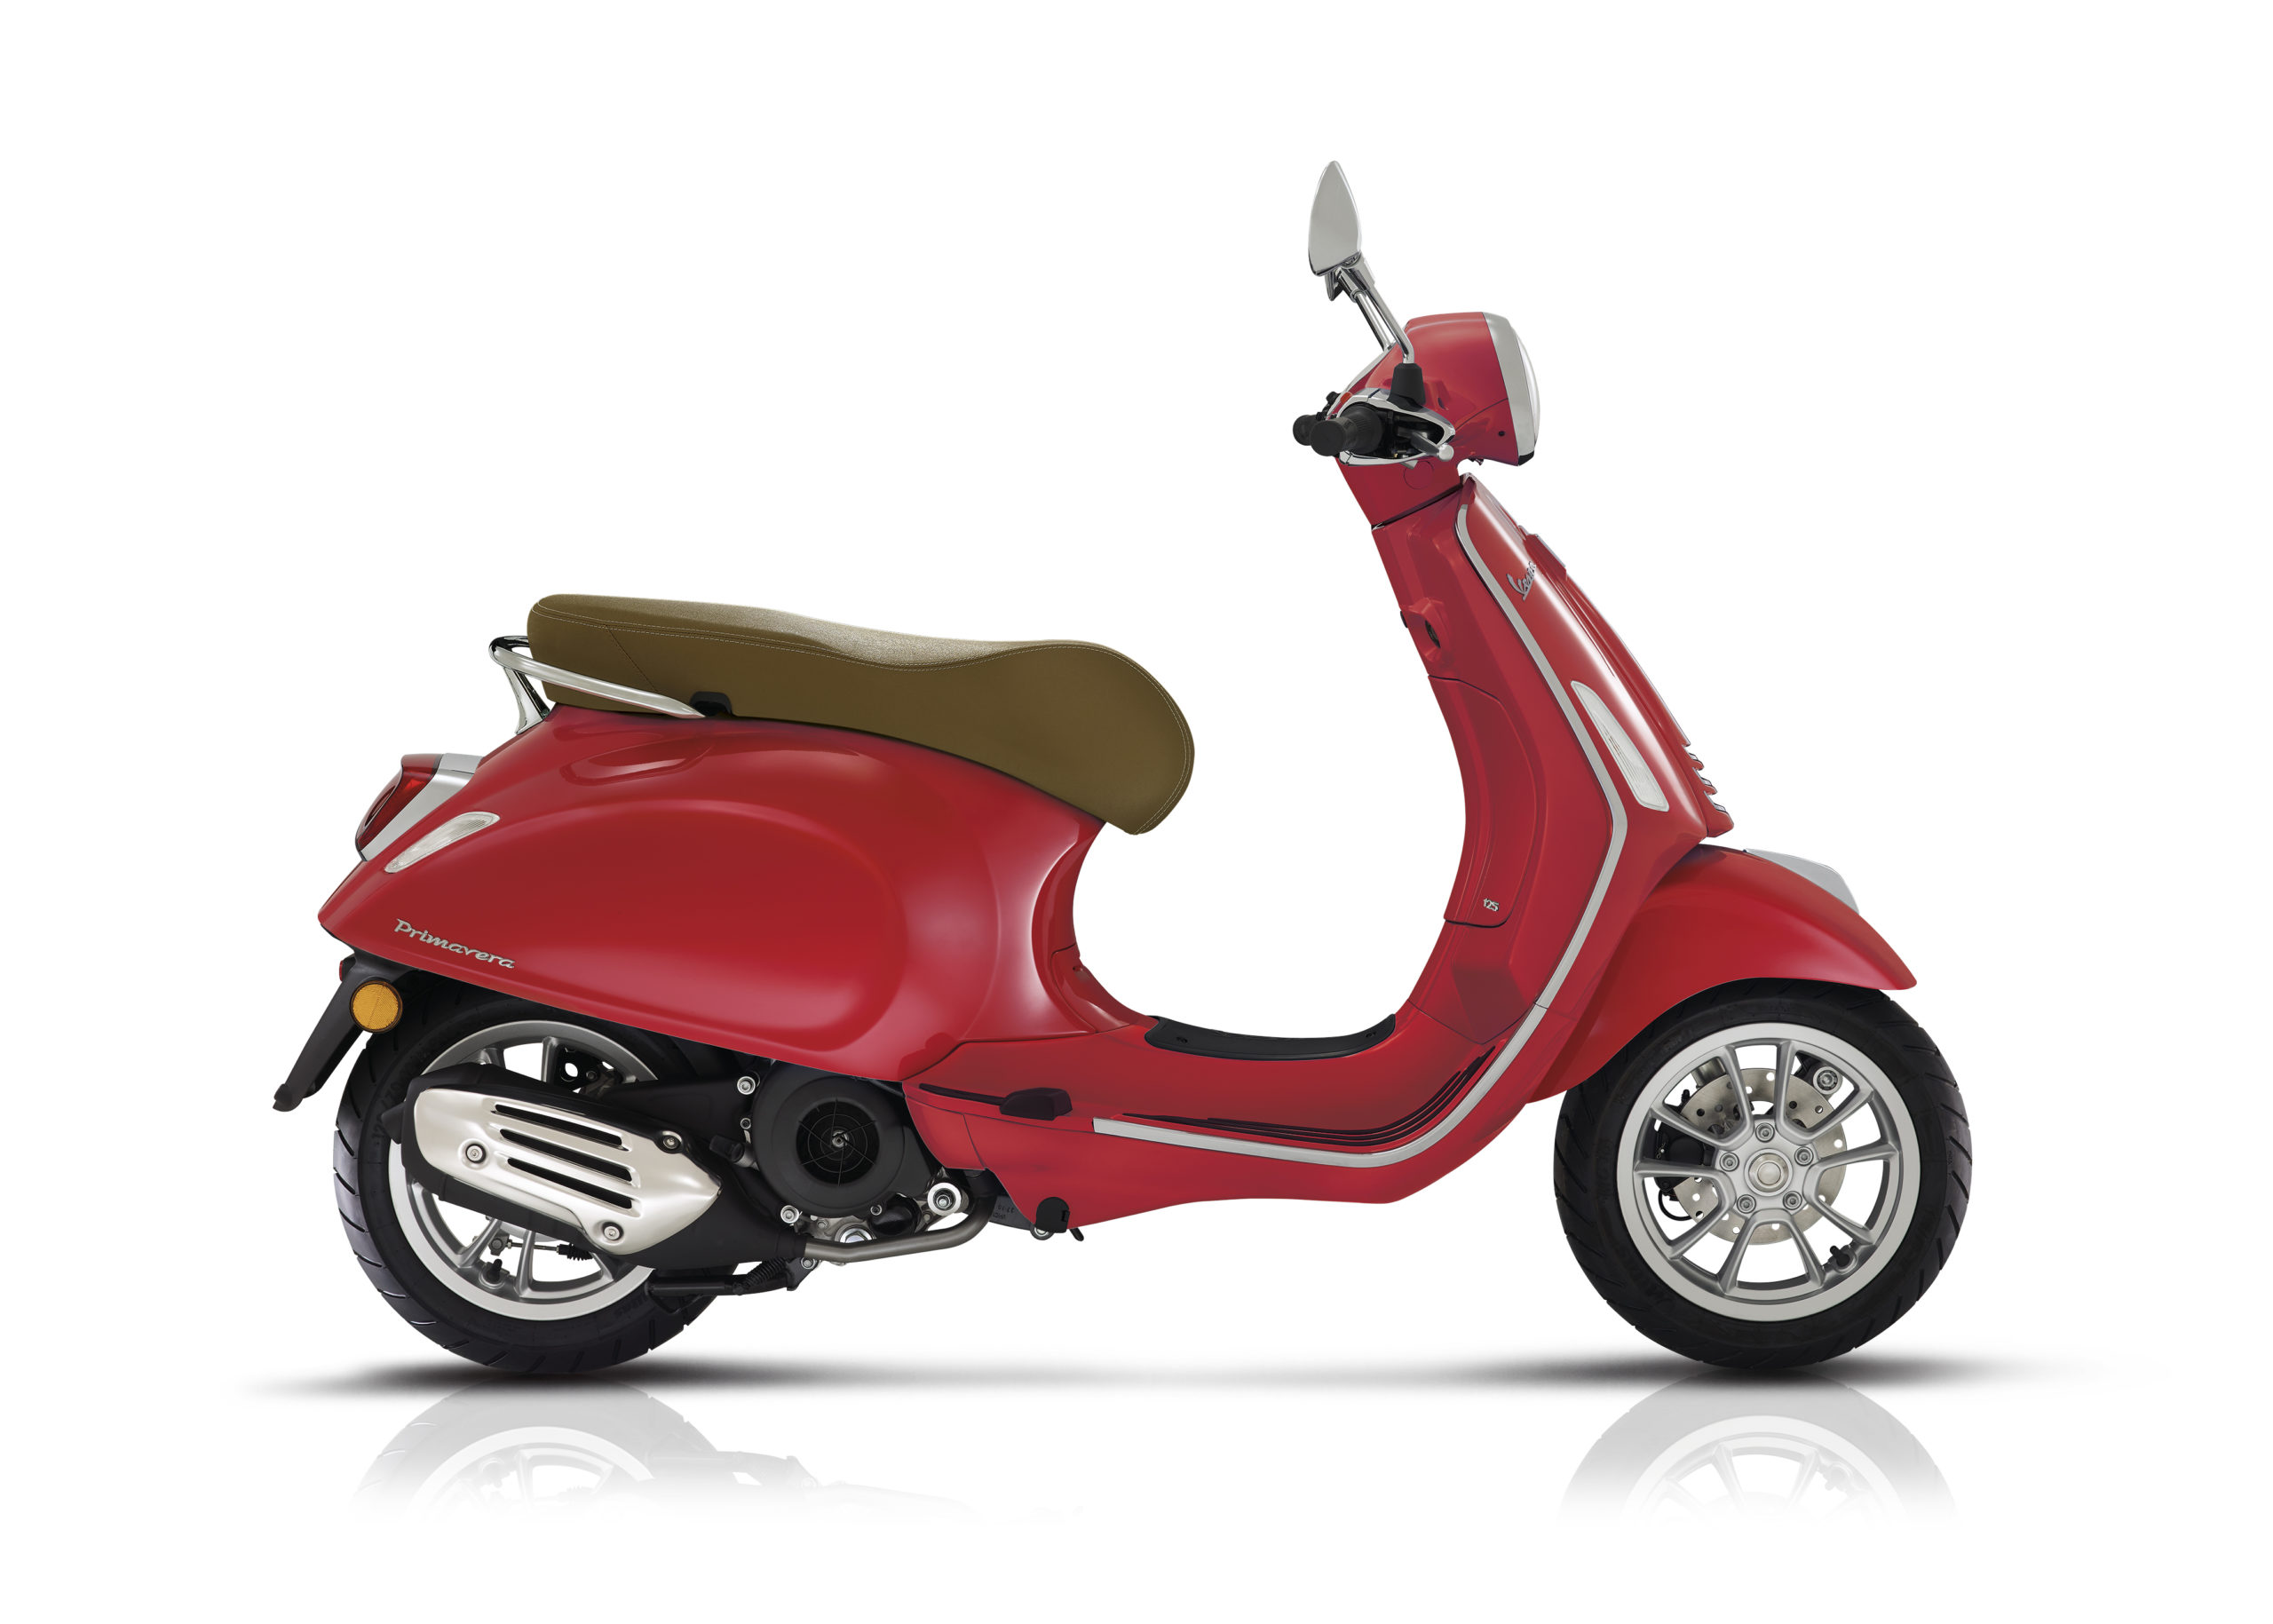 Vespa Primavera 125 red scaled